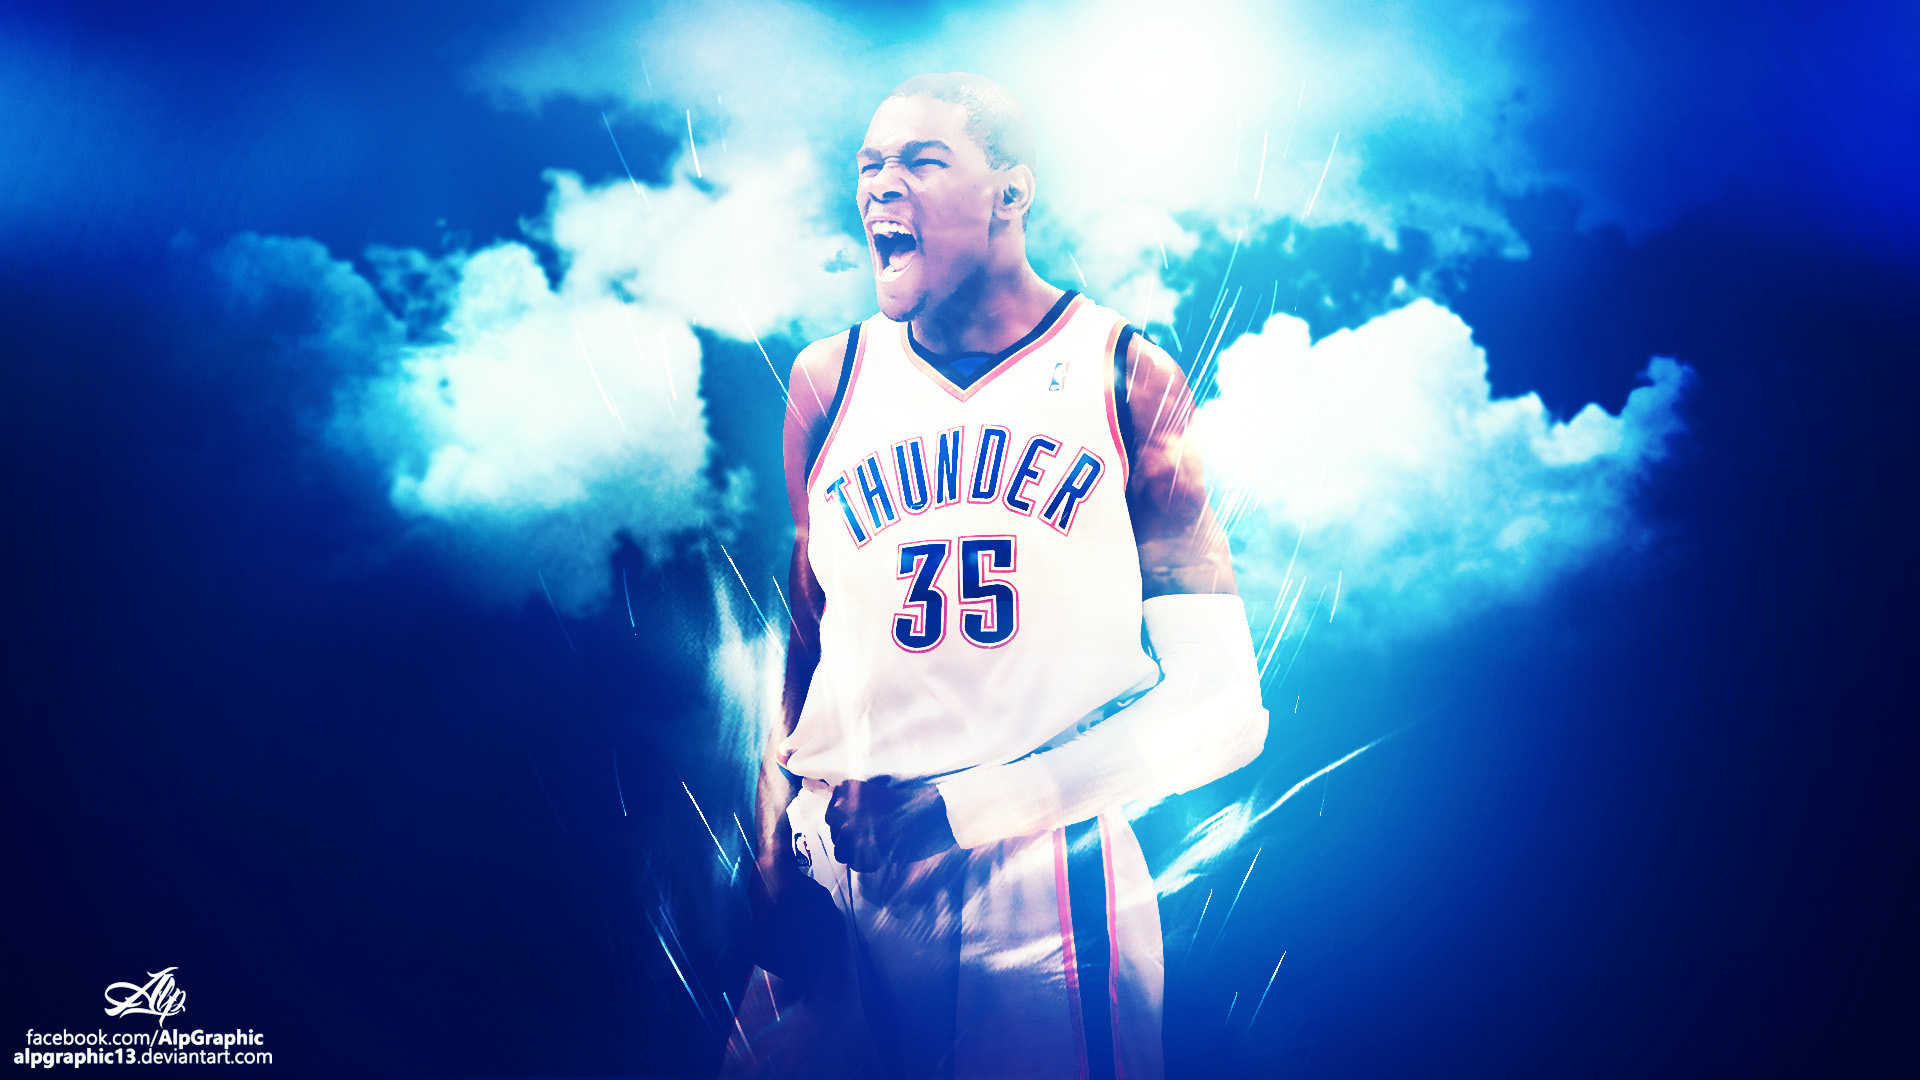 Kd Quotes Wallpaper 18 Kevin Durant Hd Wallpapers Backgrounds Wallpaper Abyss